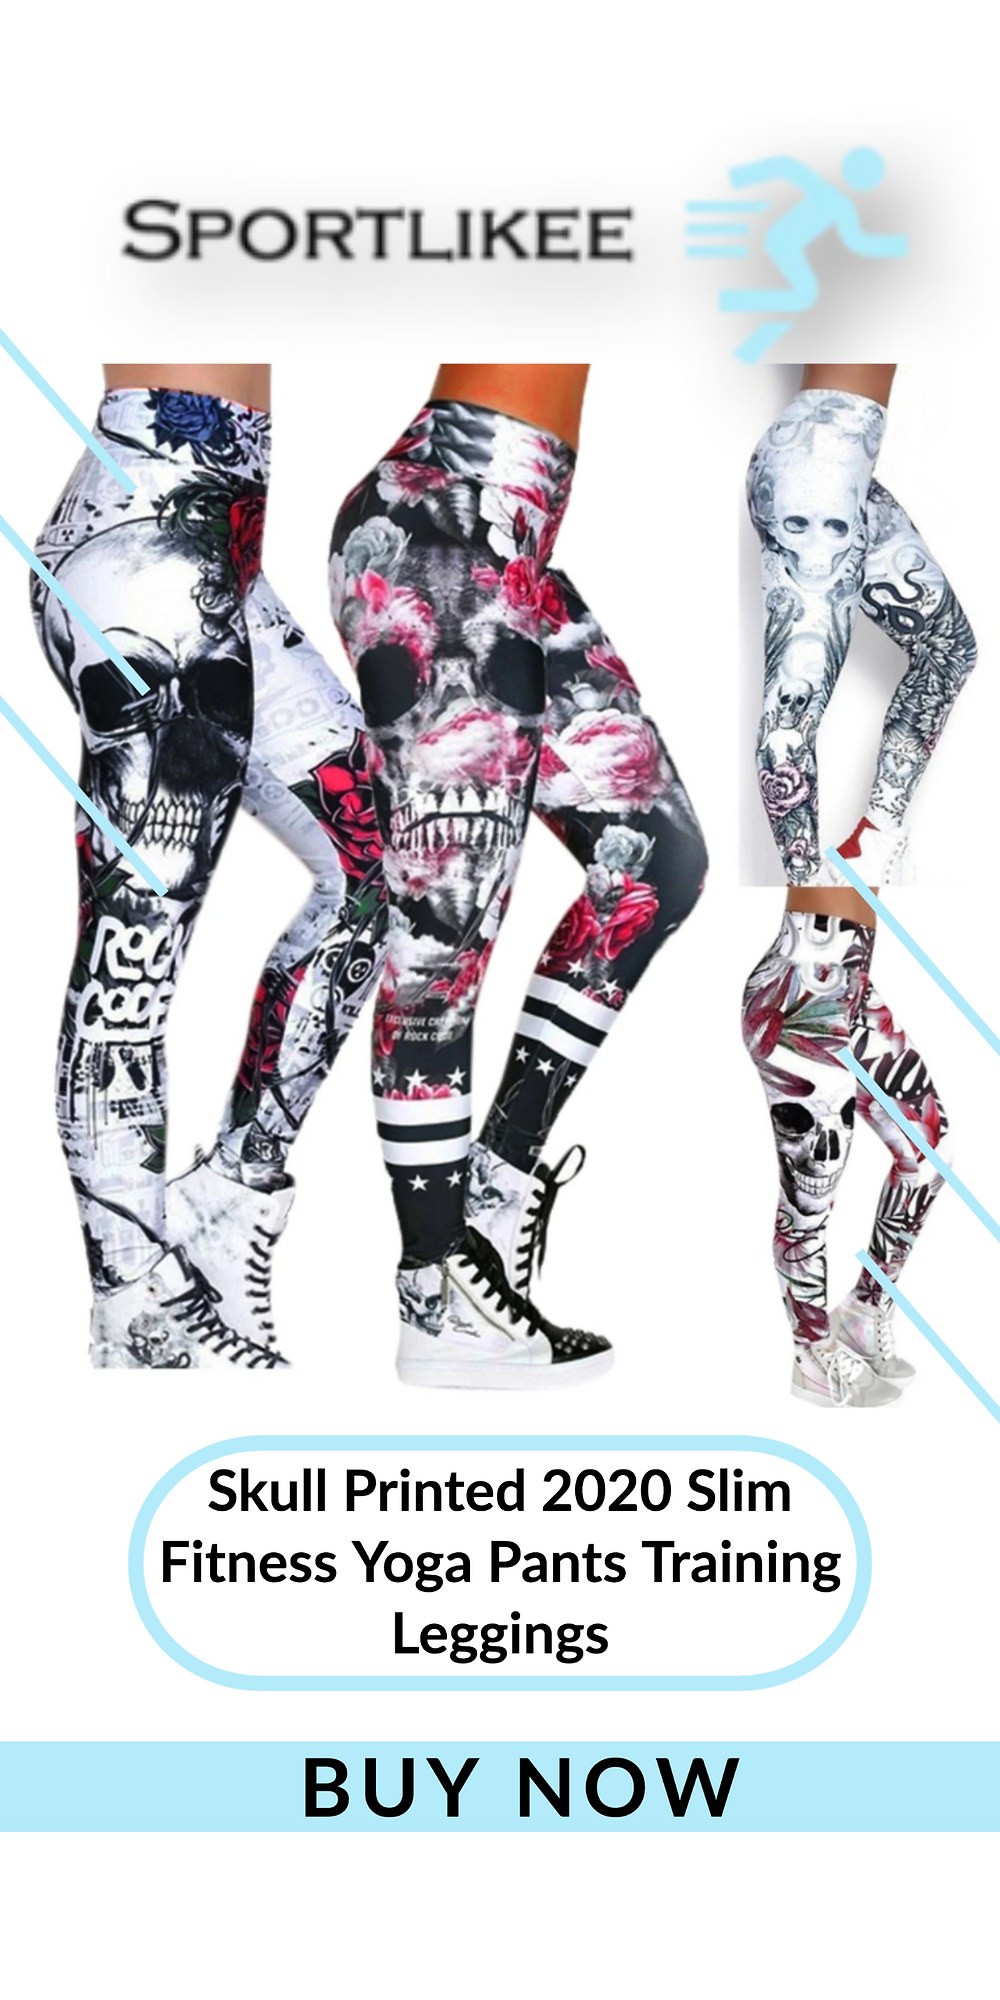 Skull Printed 2020 Slim Fitness Yoga Pants Training Leggings